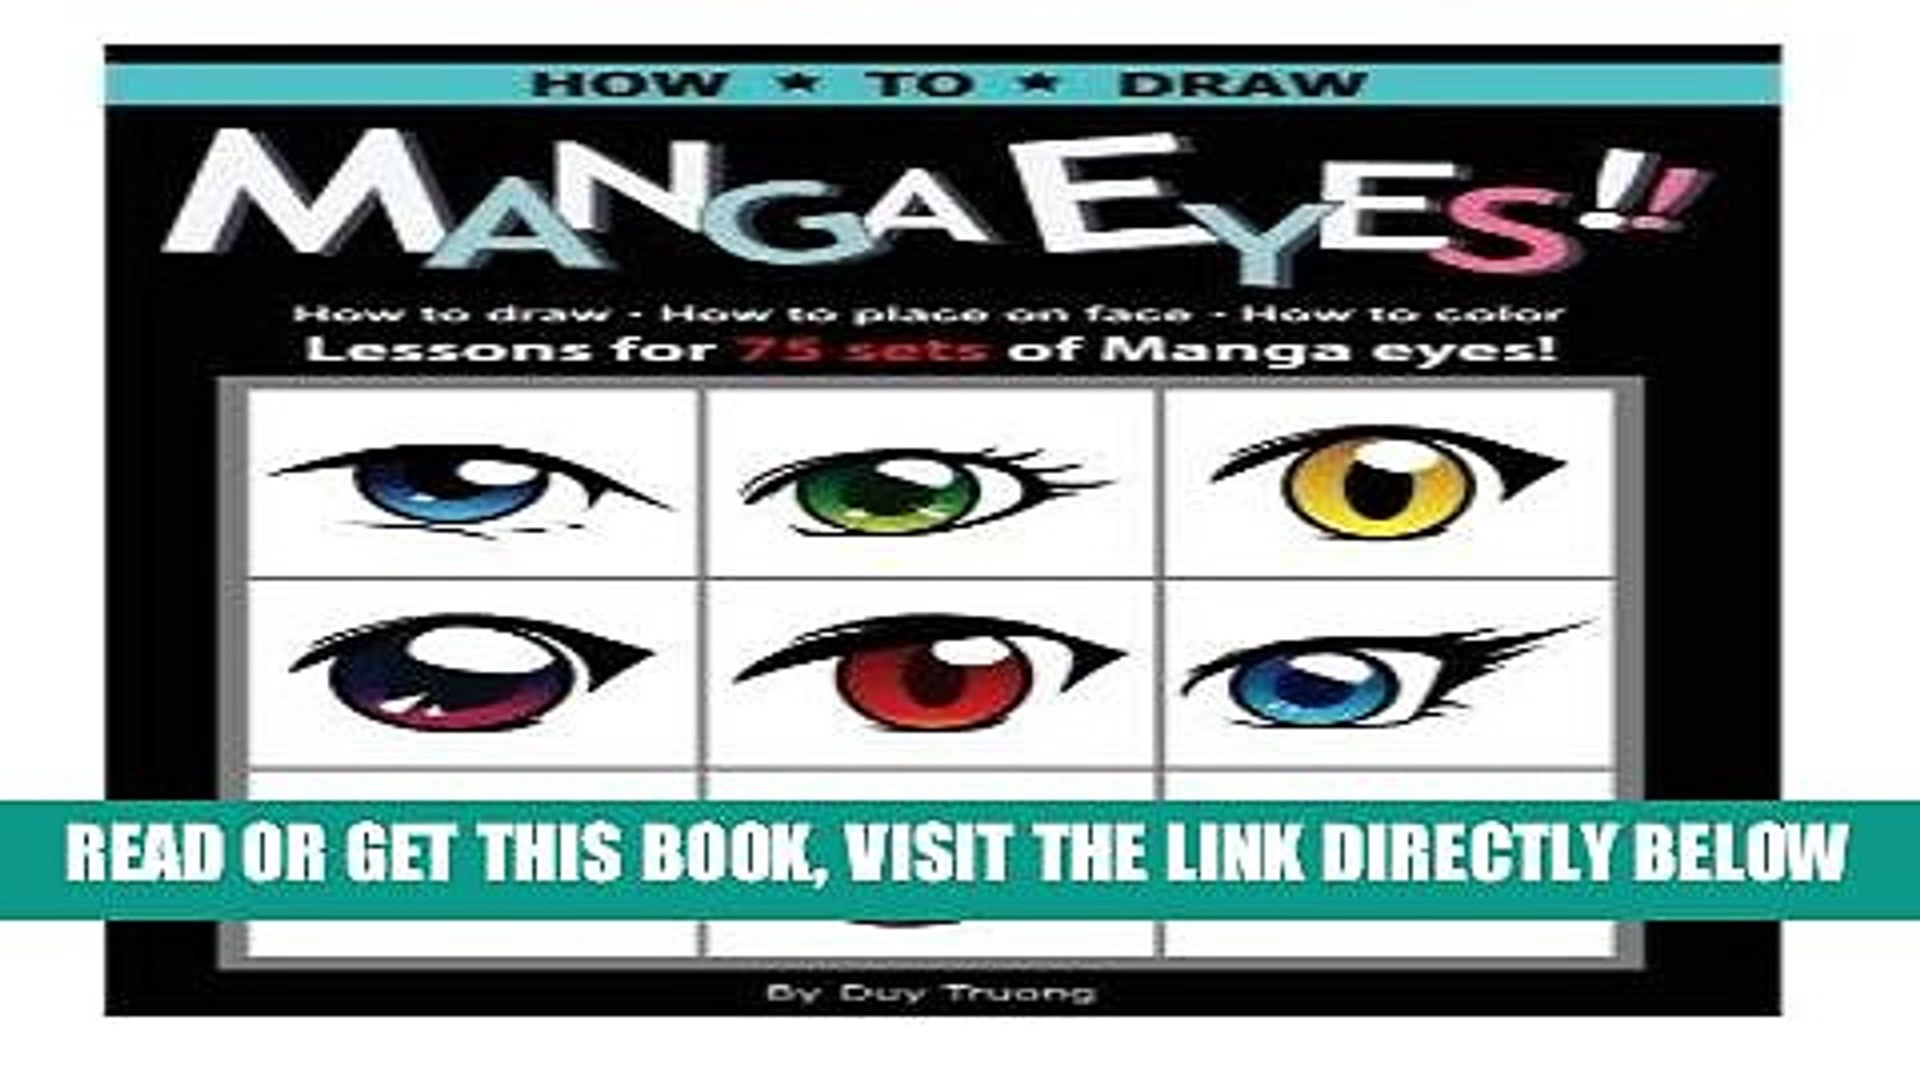 Ebook How to draw Manga eyes!! How to Draw- How to Place on Face-How to Color Lessons for 75 Sets